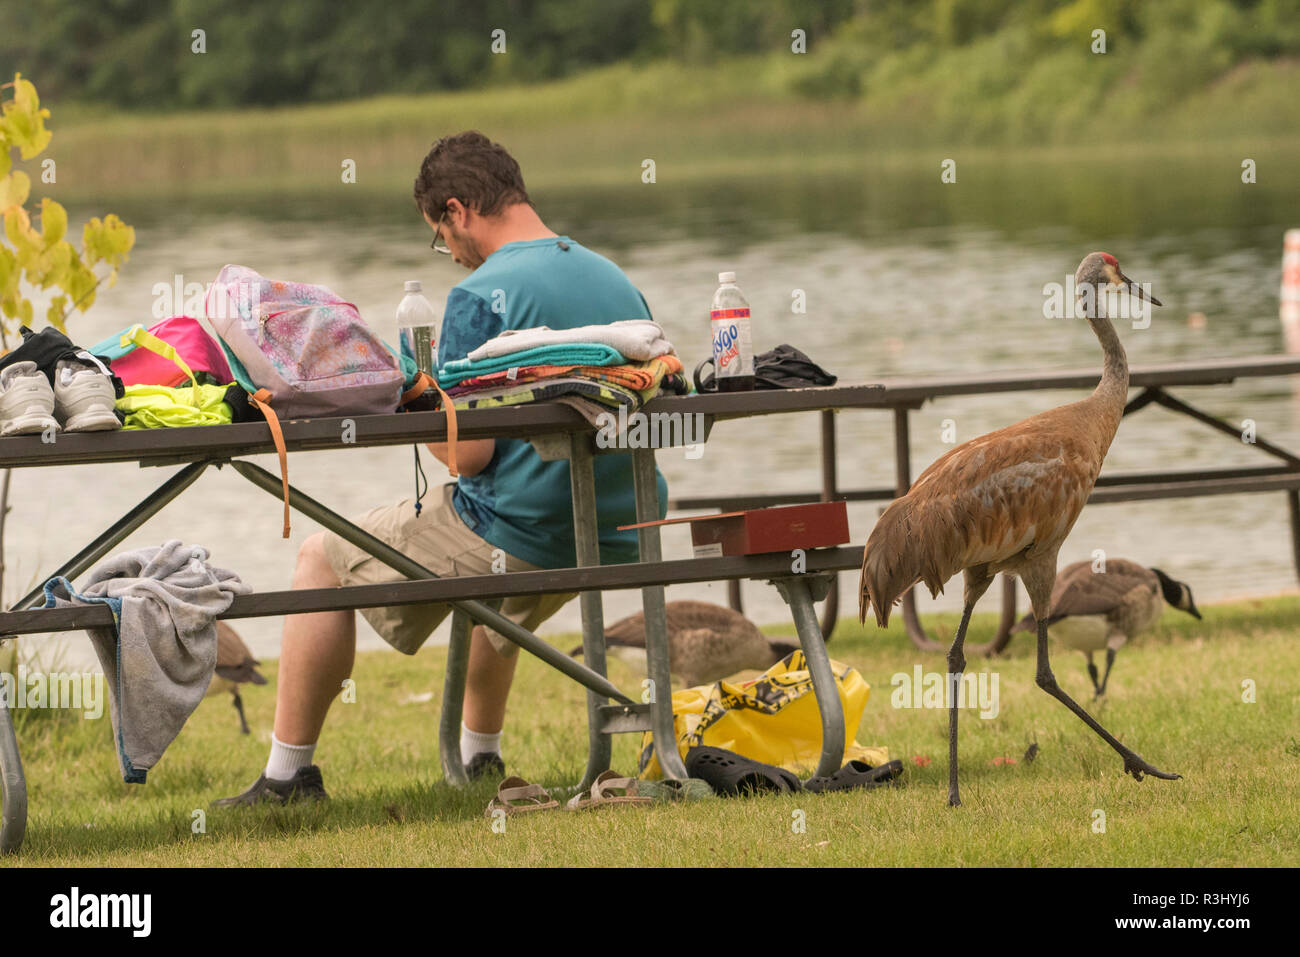 A sandhill crane (Grus canadensis) walks behind an oblivious picnicker in Ottawa lake recreation area in Wisconsin. - Stock Image